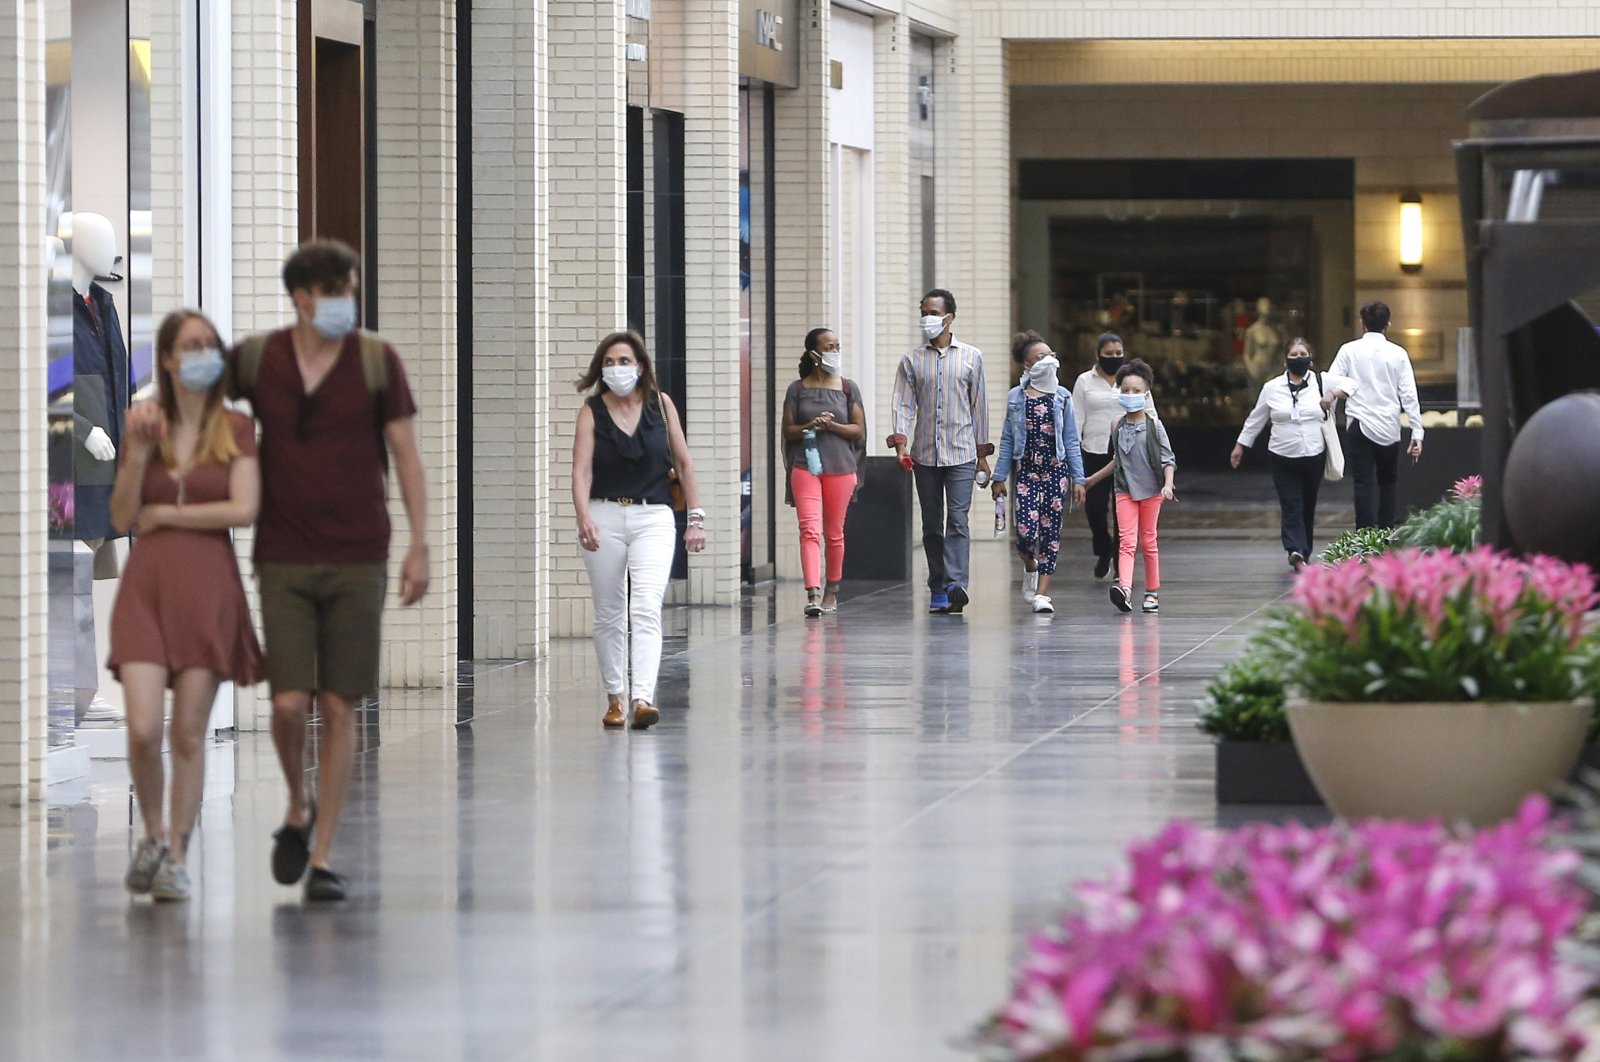 Shoppers walk through NorthPark Center mall on Friday, May 1, 2020 in Dallas, Texas. (The Dallas Morning News via AP)